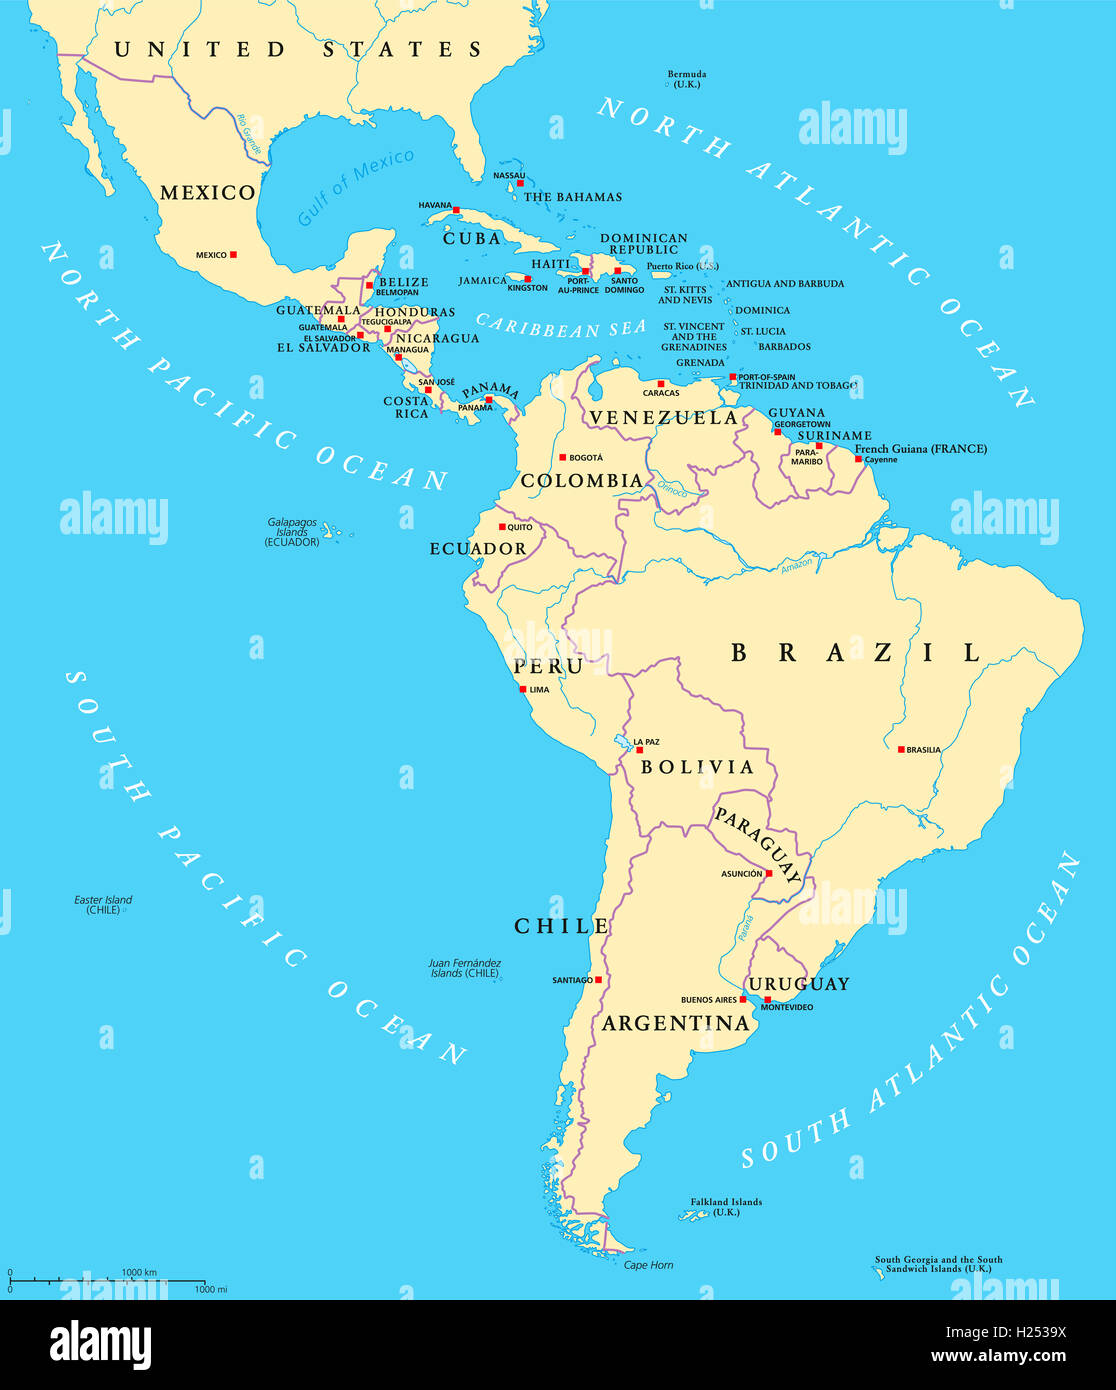 Latin America political map with capitals, national borders